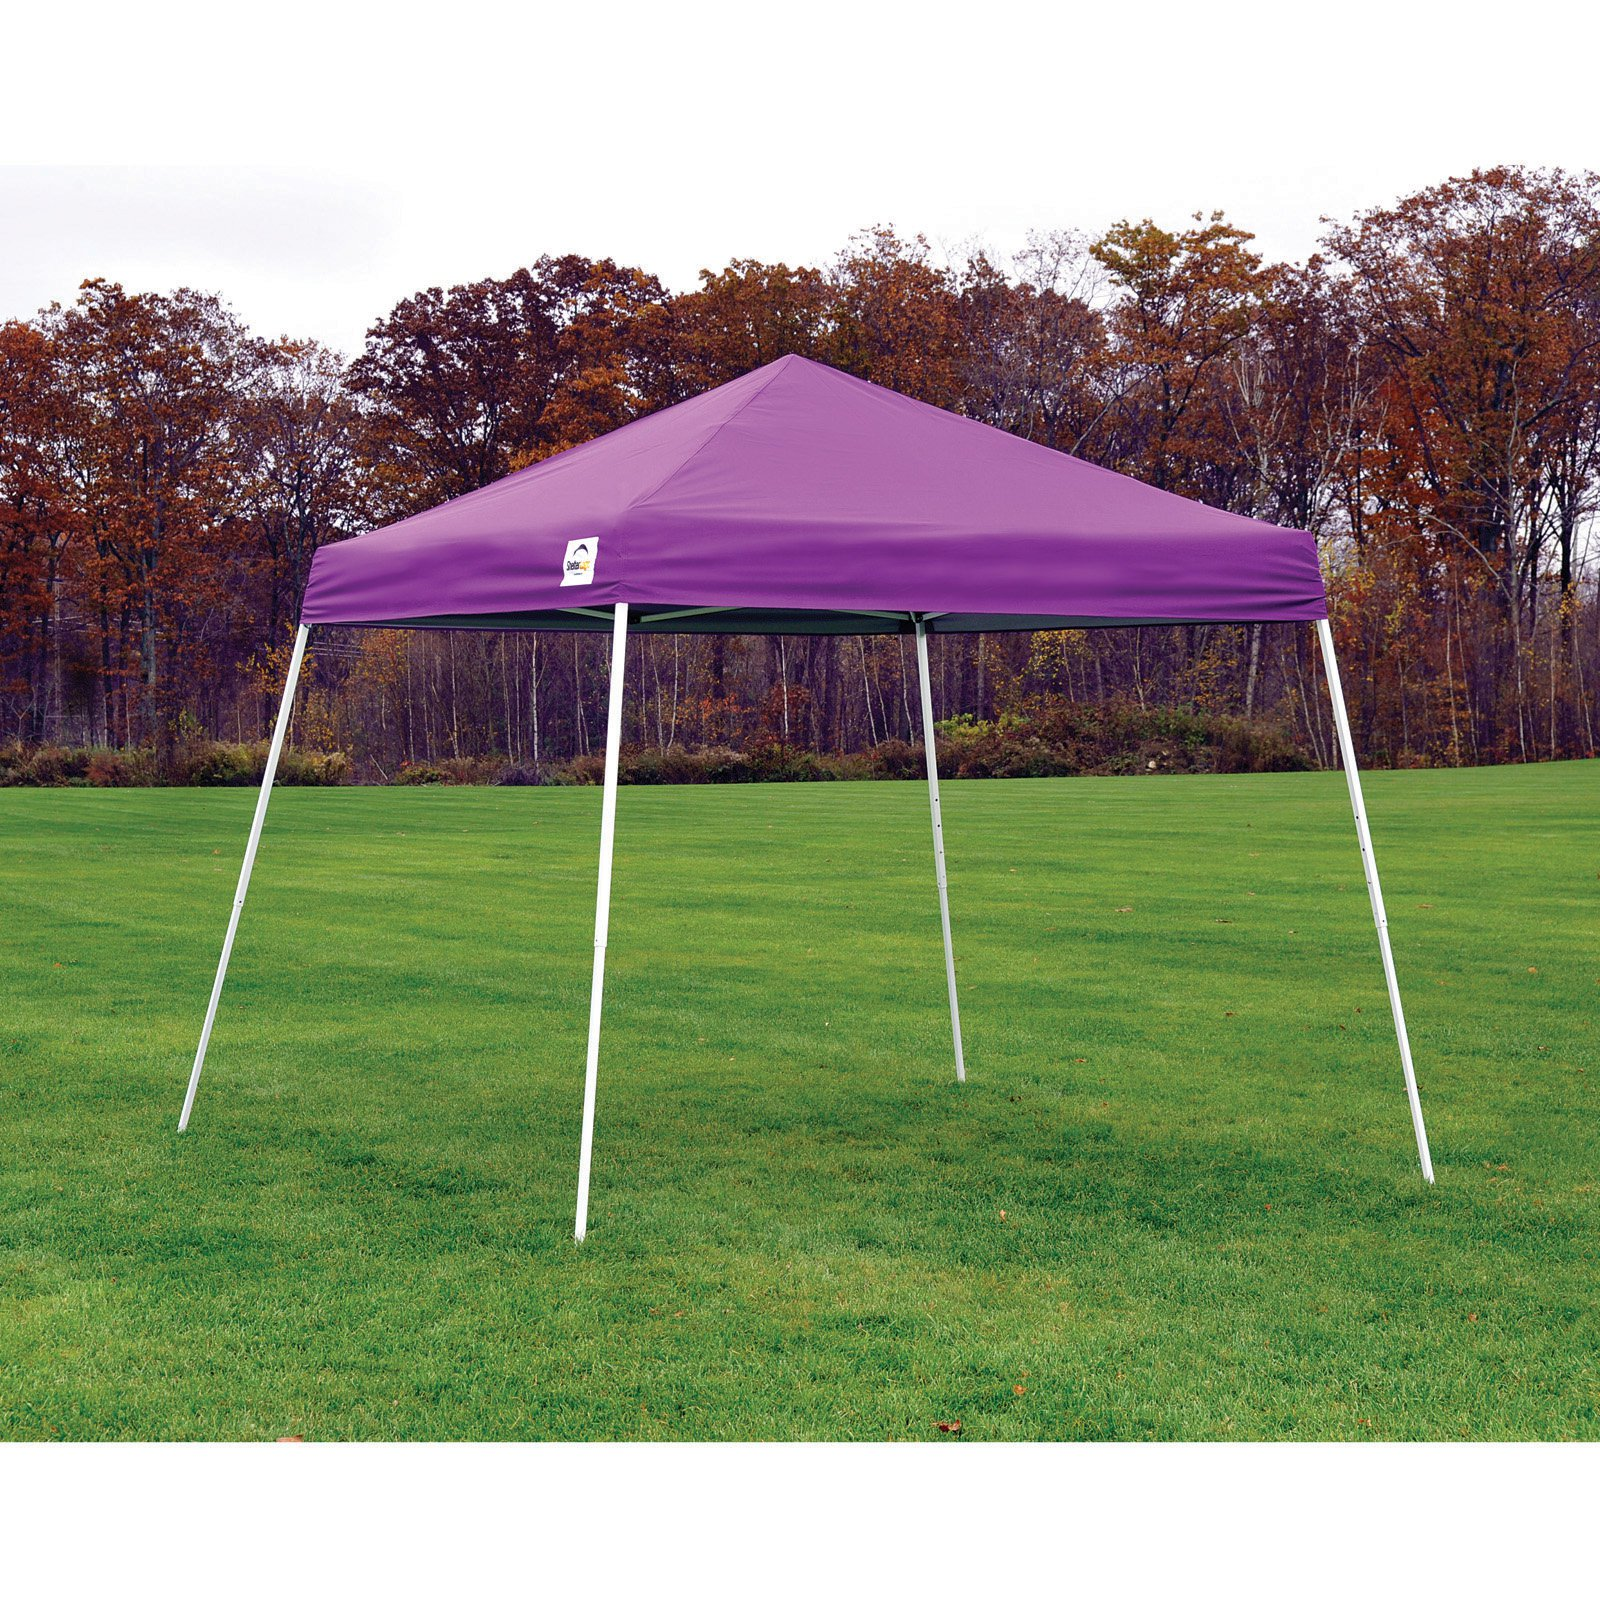 Shelterlogic 12 x 12 Slant Leg Sport Series Pop Up Canopy  sc 1 st  Walmart & Shelterlogic 12 x 12 Slant Leg Sport Series Pop Up Canopy ...